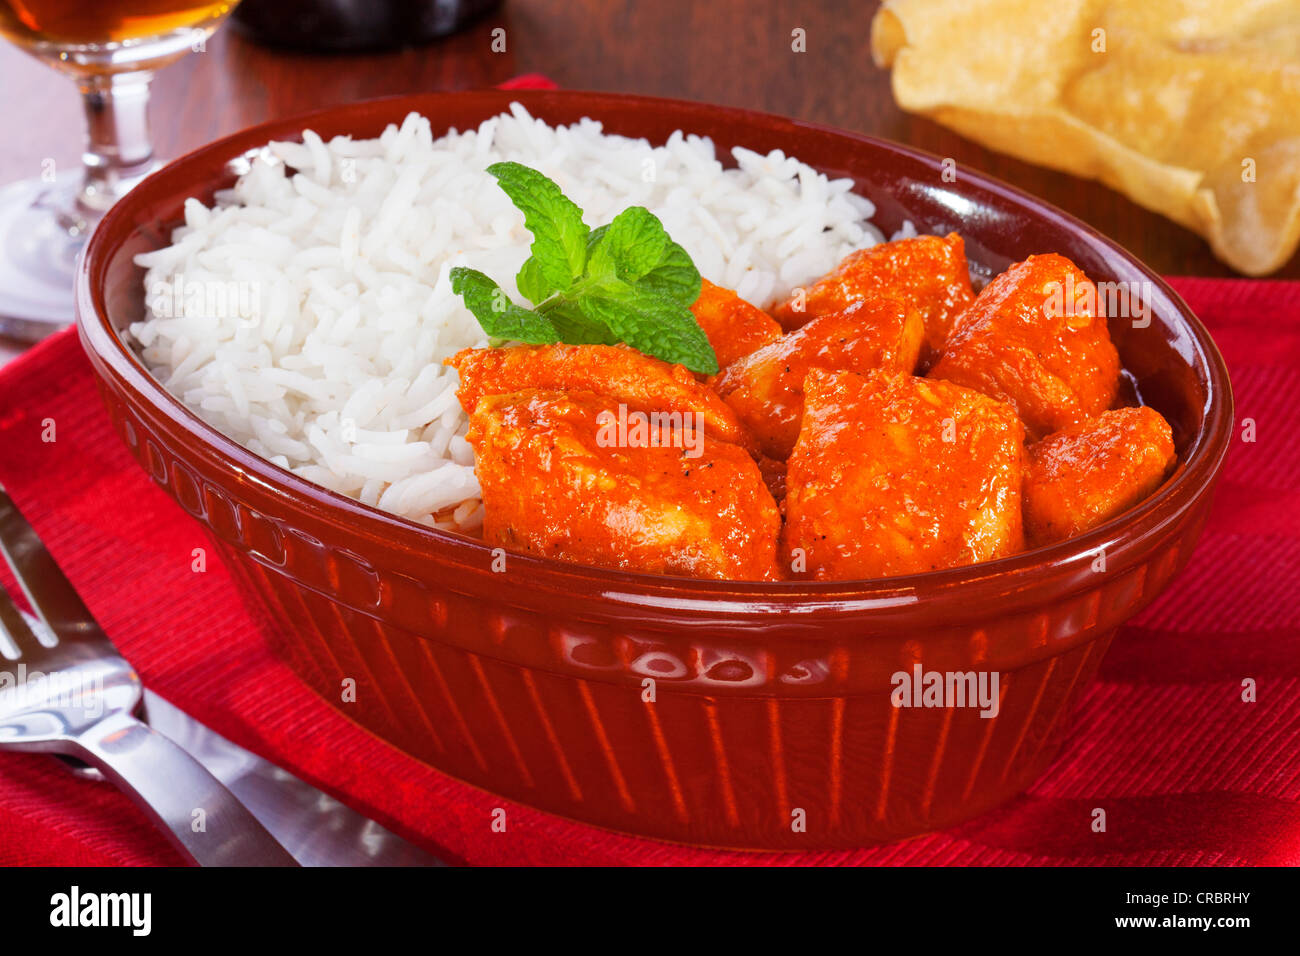 Chicken curry and rice, as served in a pub, in an old pie dish. - Stock Image